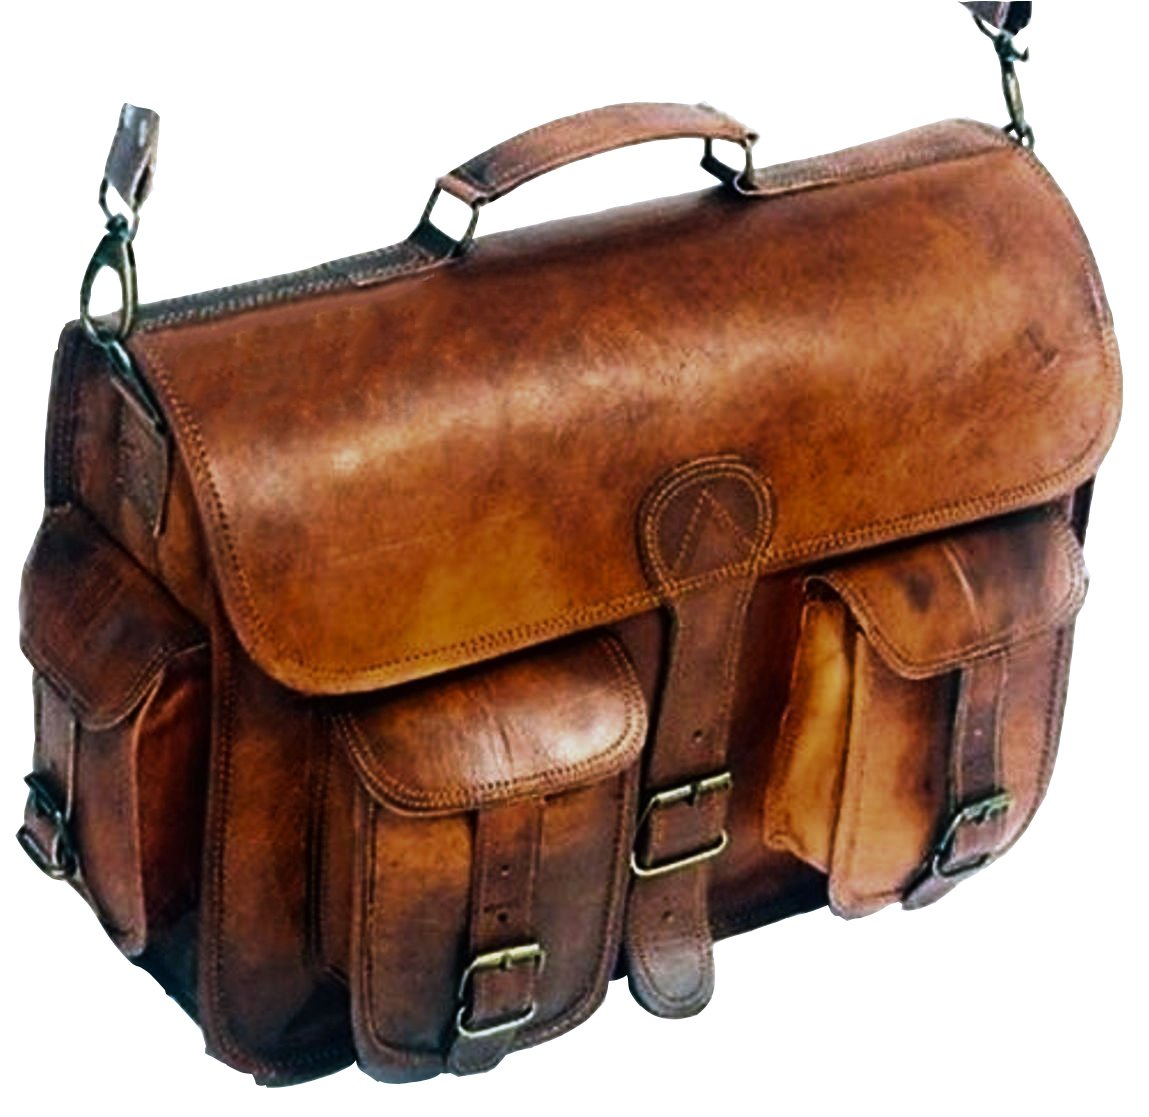 Leather Messenger Handmade Bag Laptop Bag Satchel Bag Padded Messenger Bag School Bag Gbag (T)